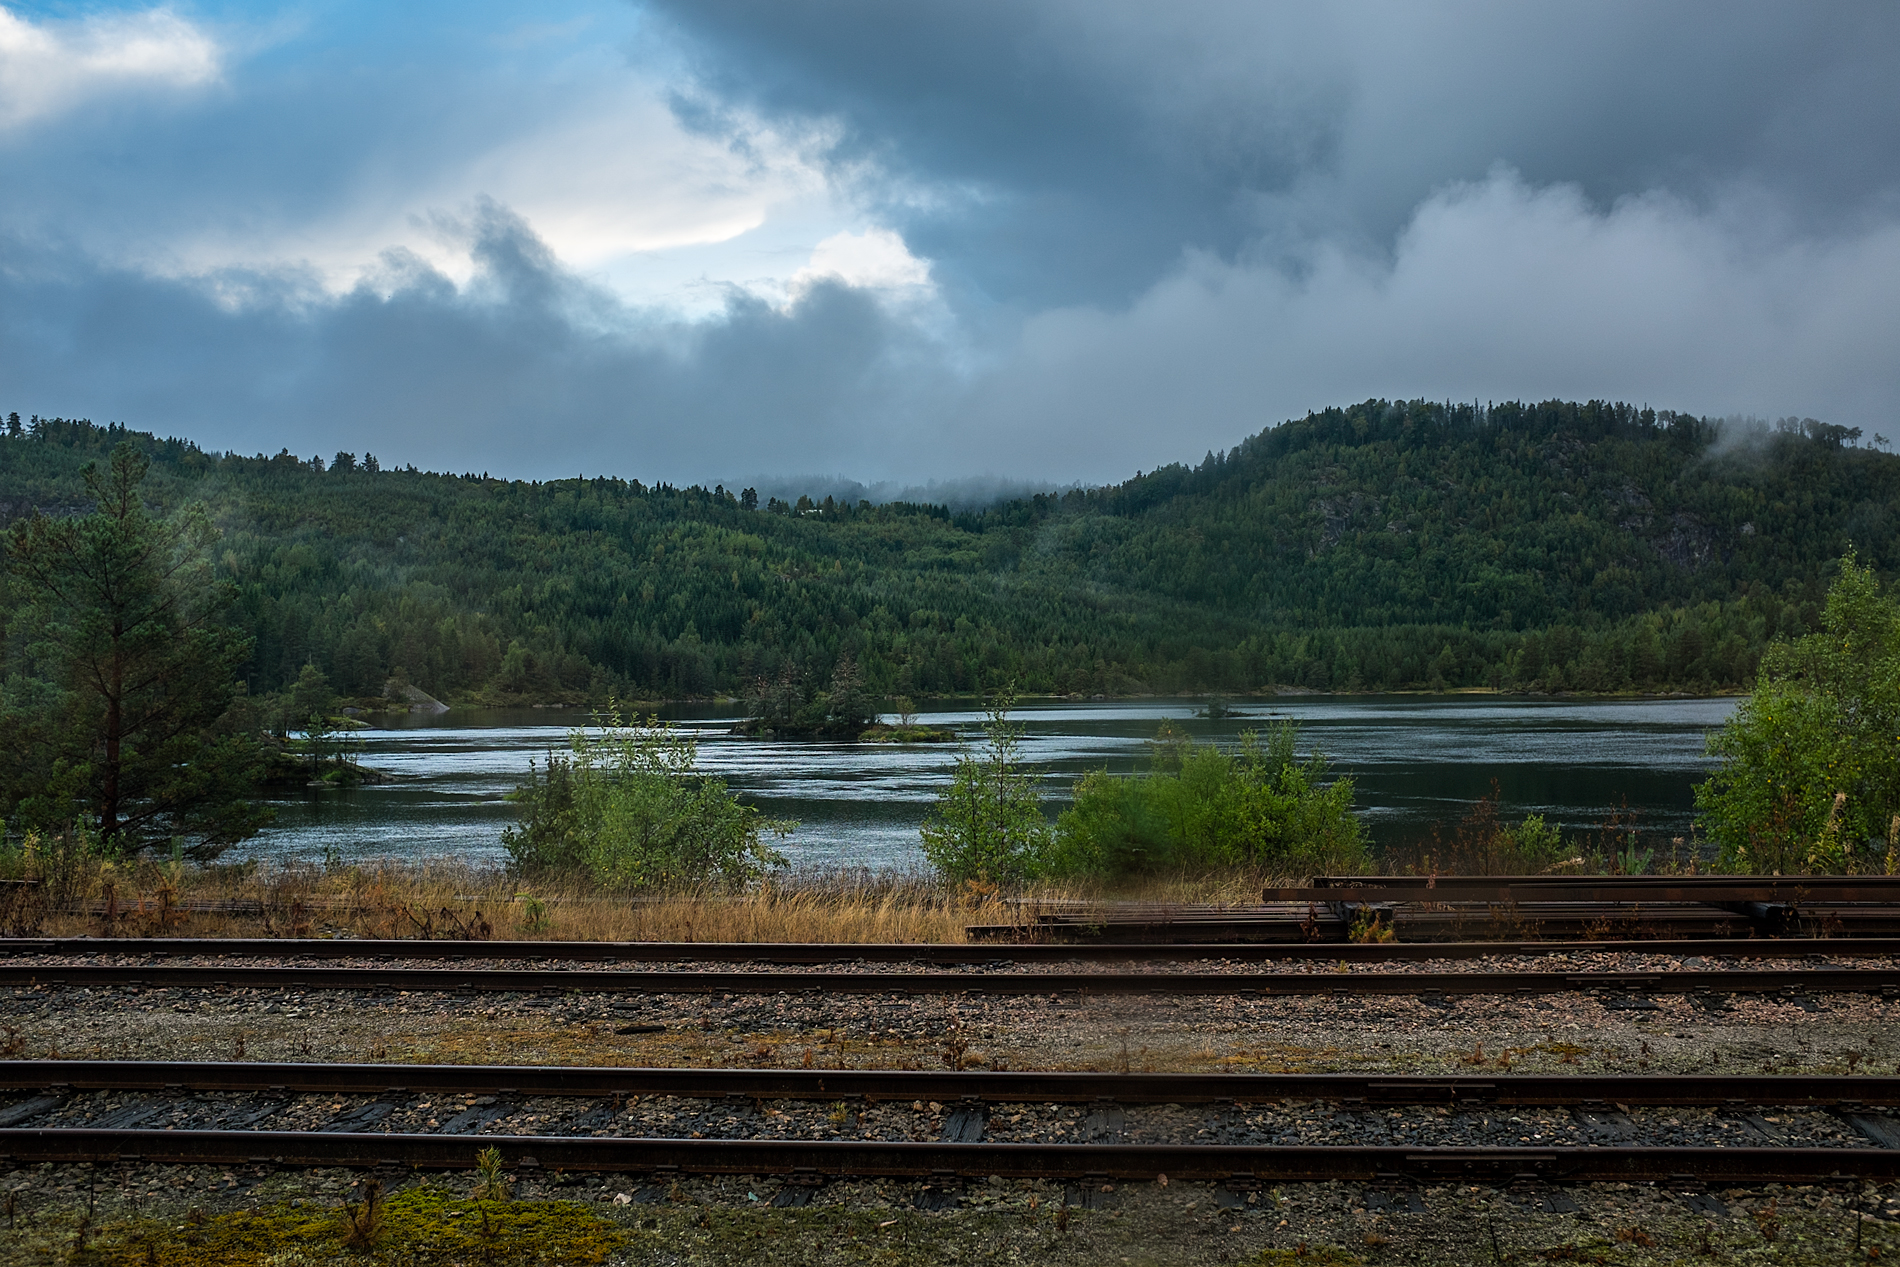 Day 260 – Tuesday September 17 – Train from Egersund to Oslo; Somewhere..